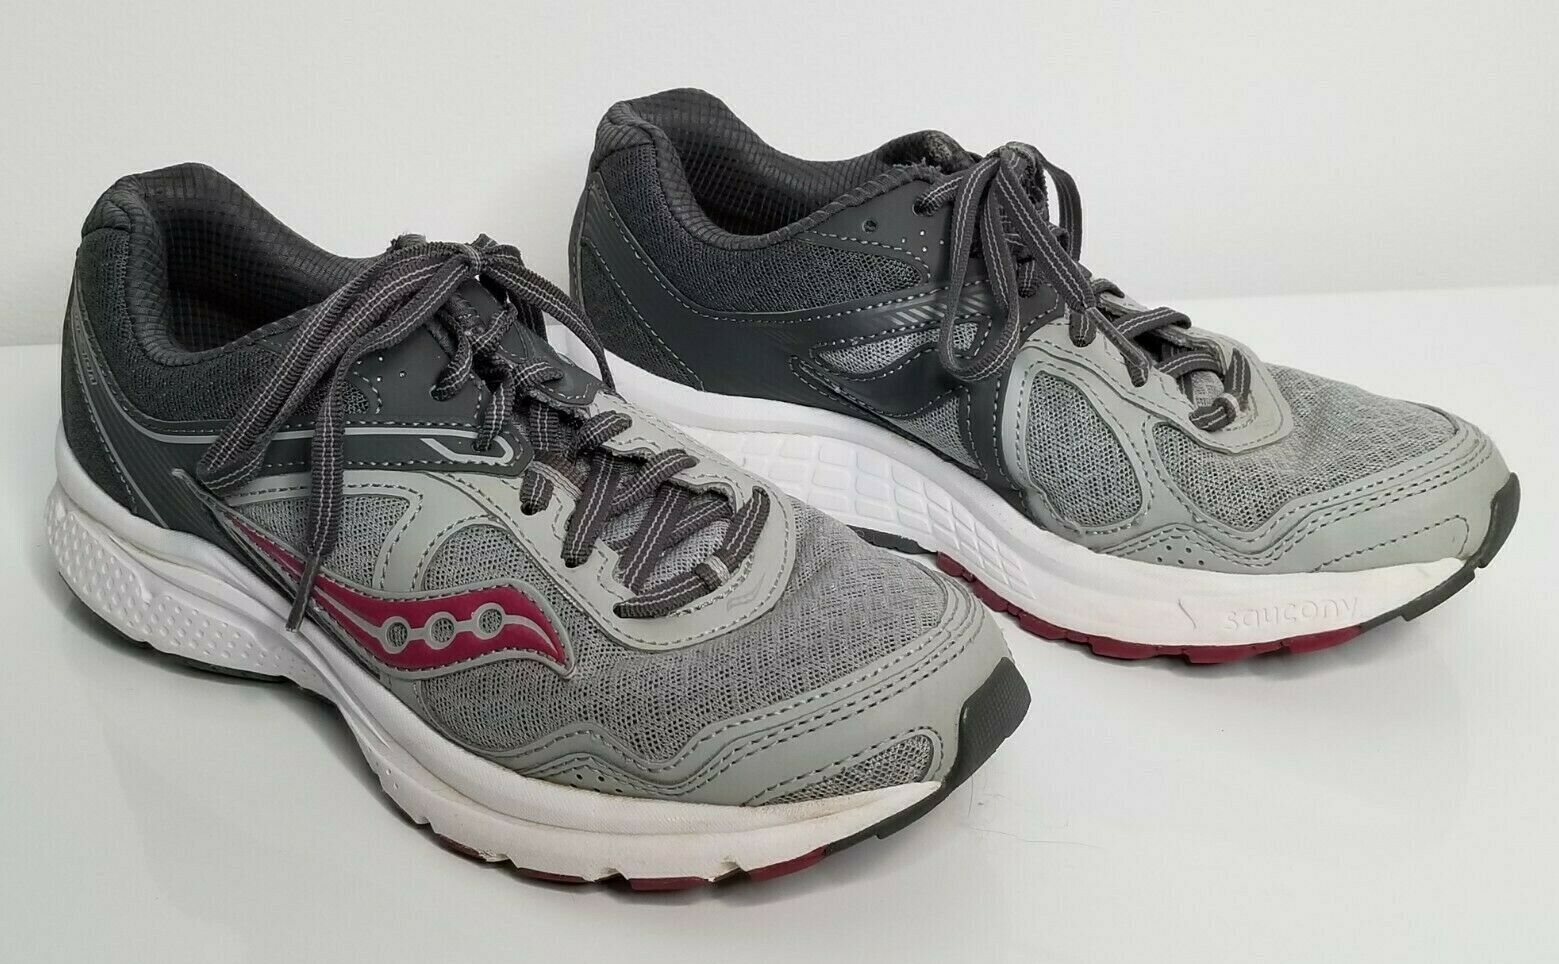 Primary image for SAUCONY Womens Grid Cohesion Gray Pink 7.5 Running Athletic Shoes S15352-12